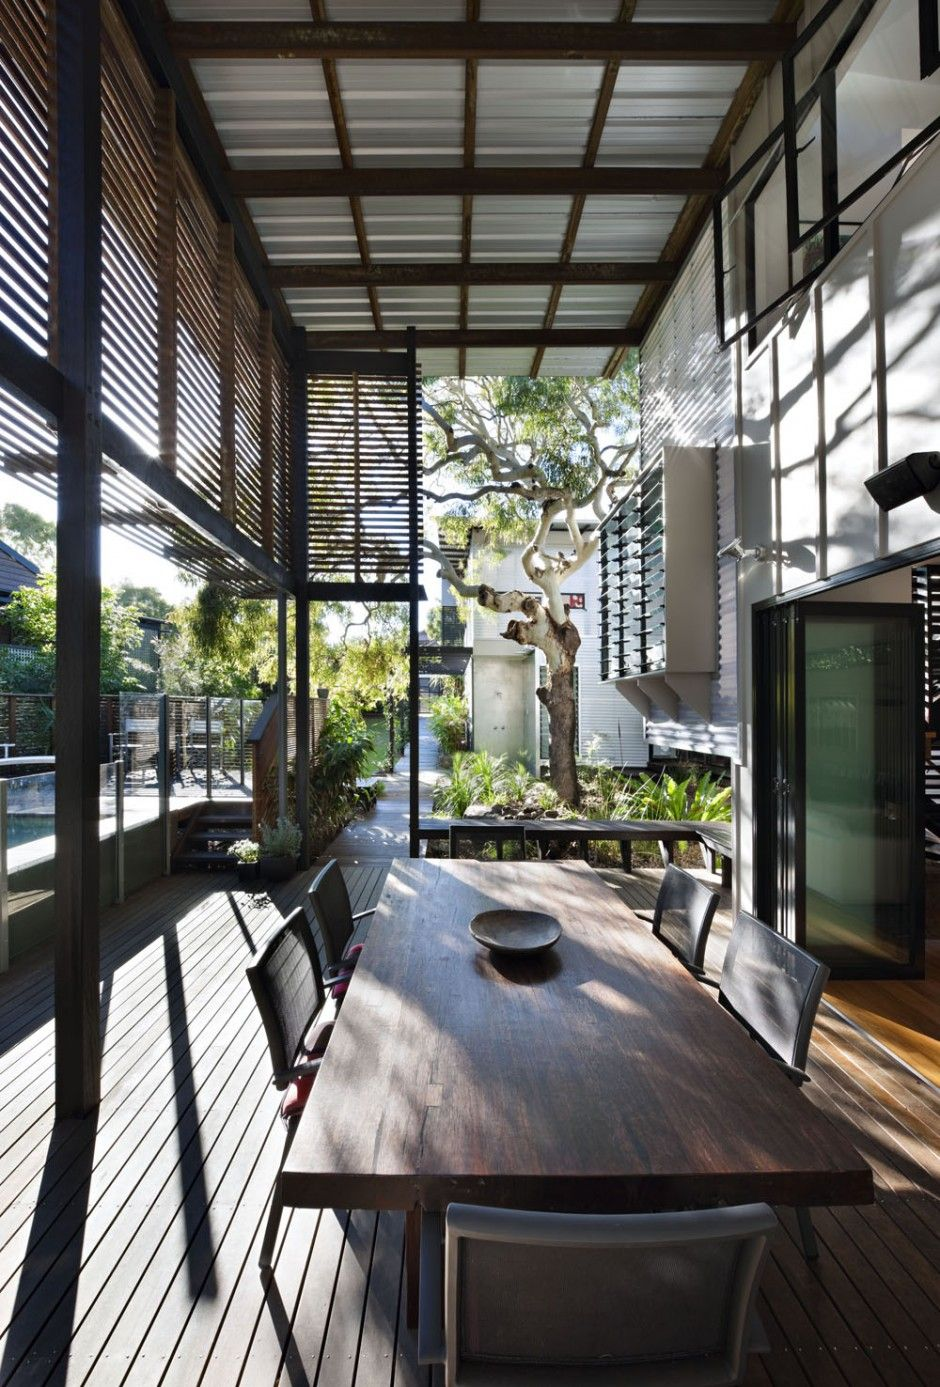 Lovely The Marcus Beach House By Bark Architects Located On The Sunshine Coast Of  Queensland, Australia. The Team Of Bark Architects Completed The Marcus  Beach Ho Great Pictures